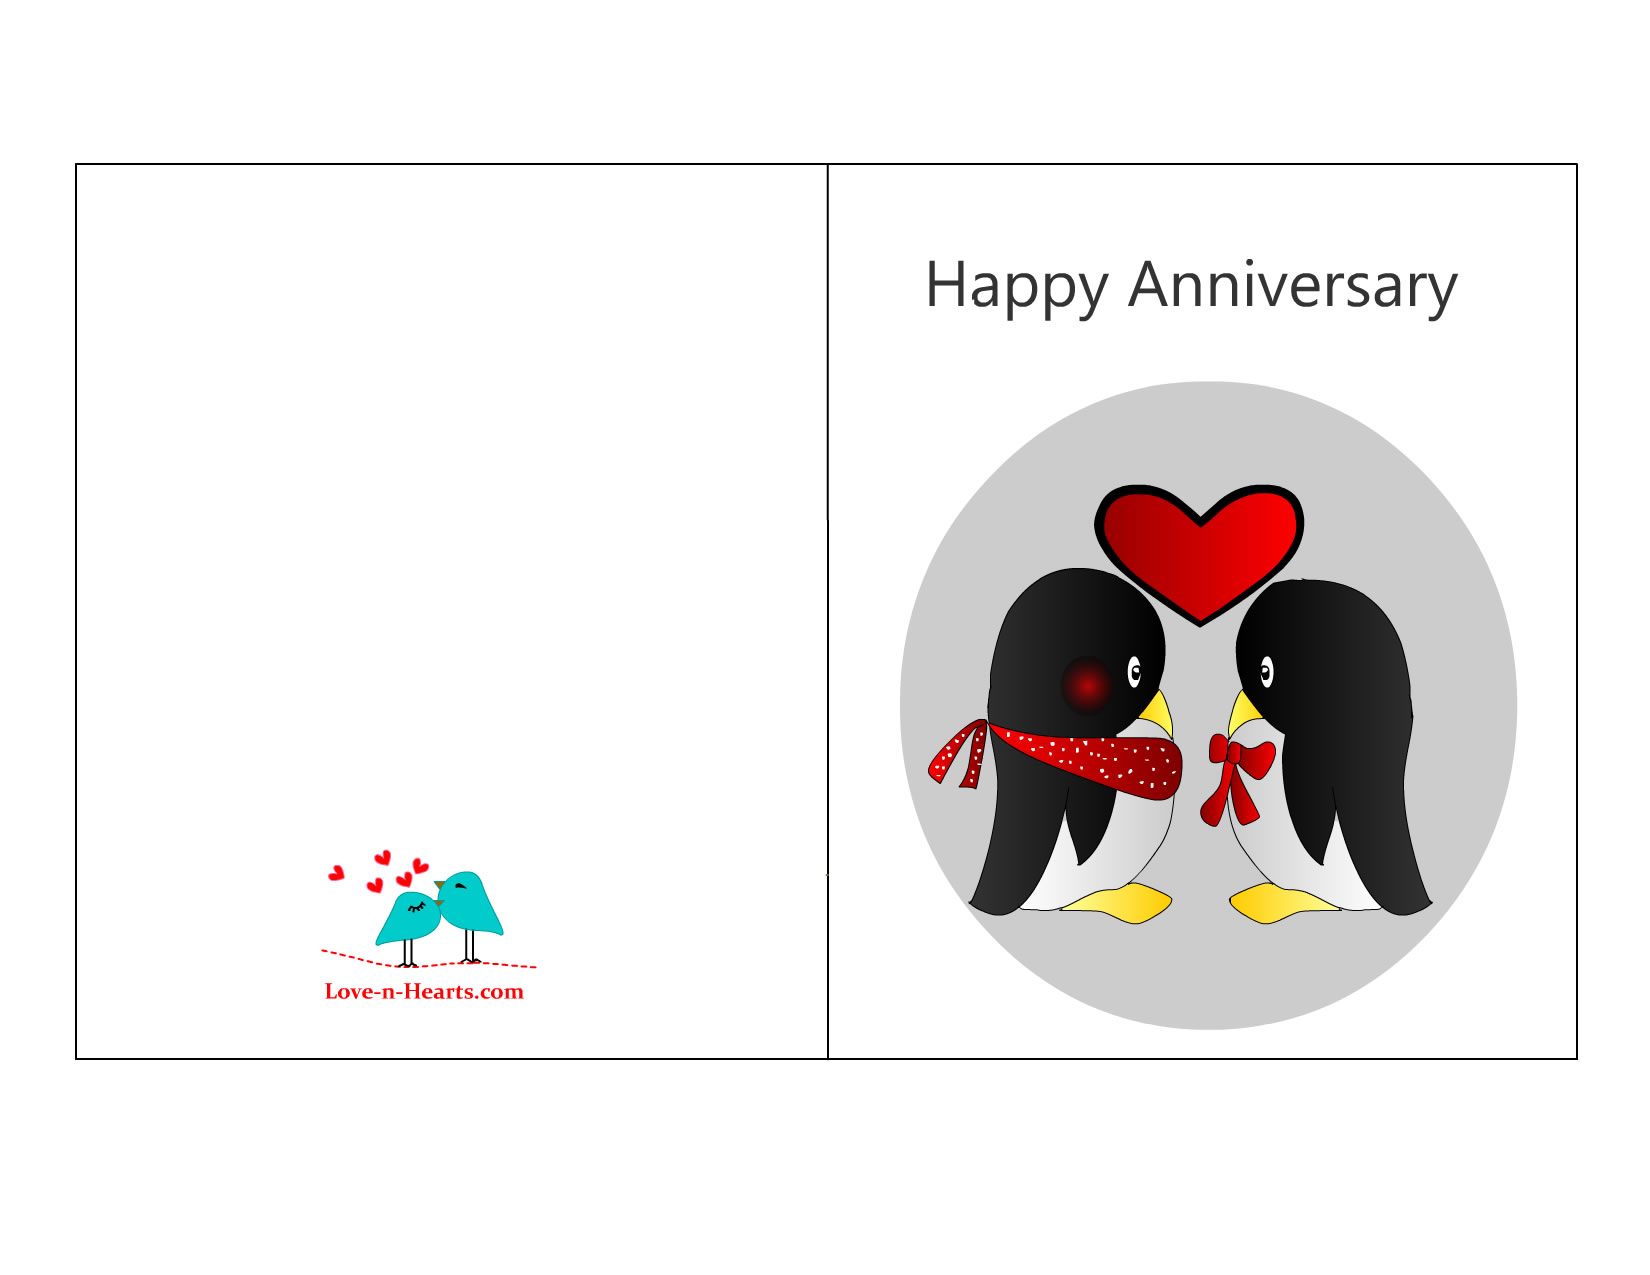 Print Free Anniversary Cards Salary Adjustment Template Simple Anniversary  Card 5 Print Free Anniversary Cardshtml  Printable Anniversary Cards For Her